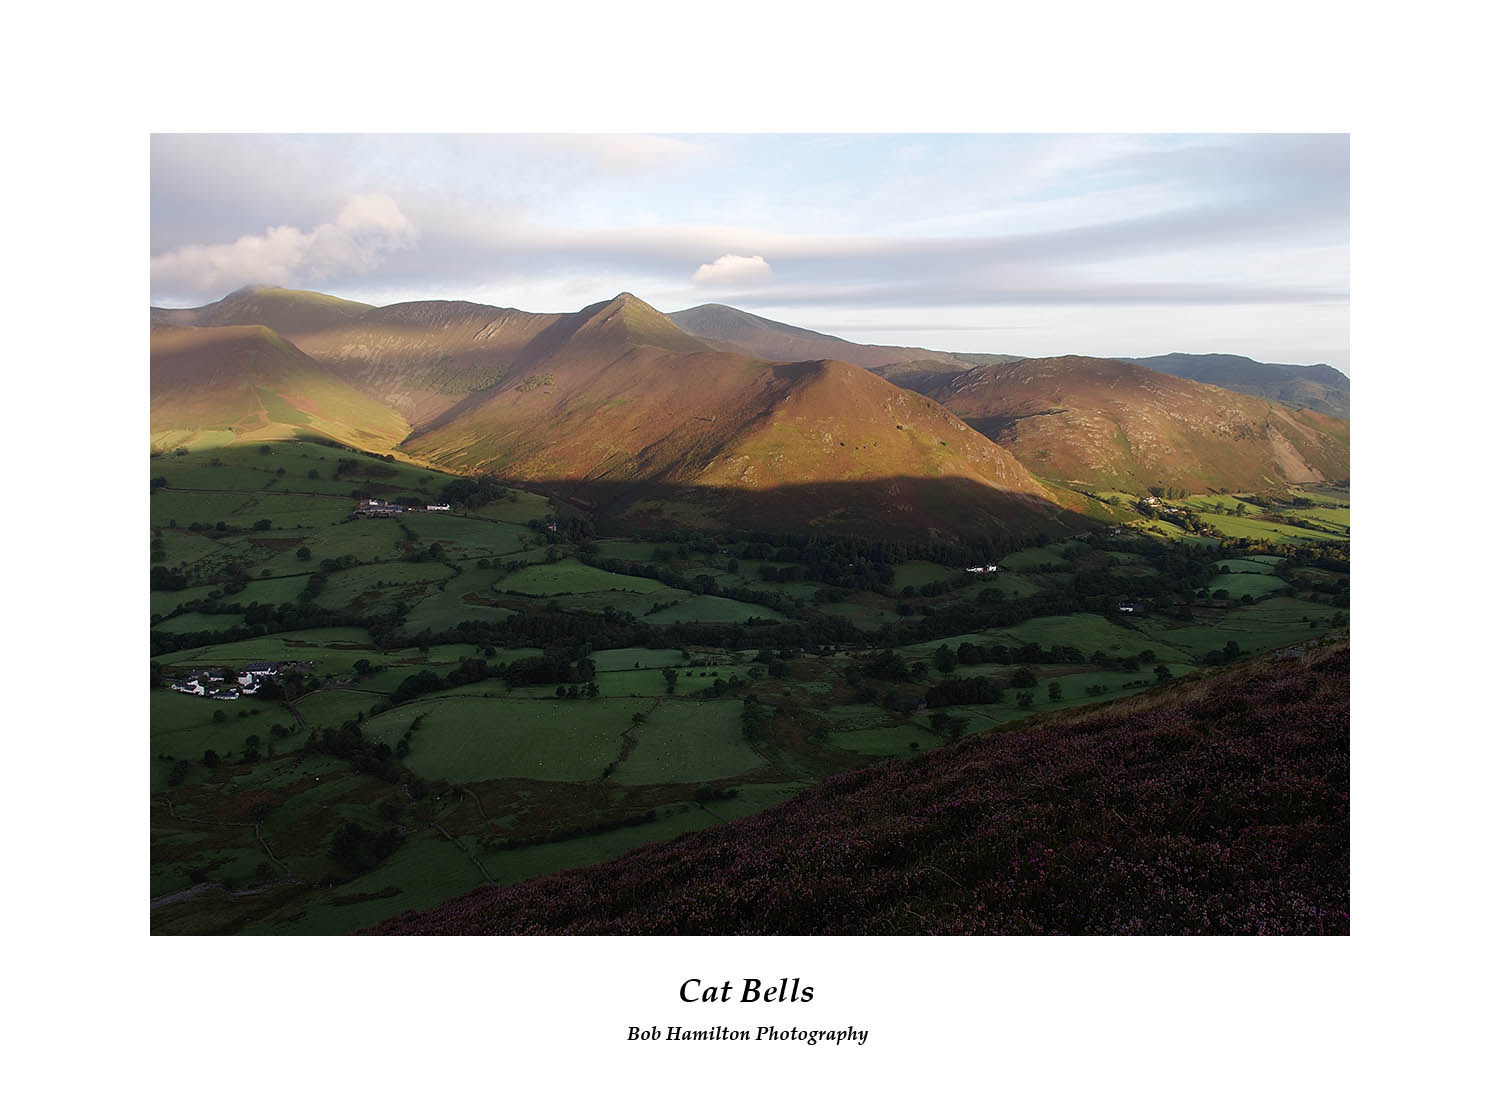 DSF1148 Rowling End Causey Pike Sail and Ard Crags from Cat Bells